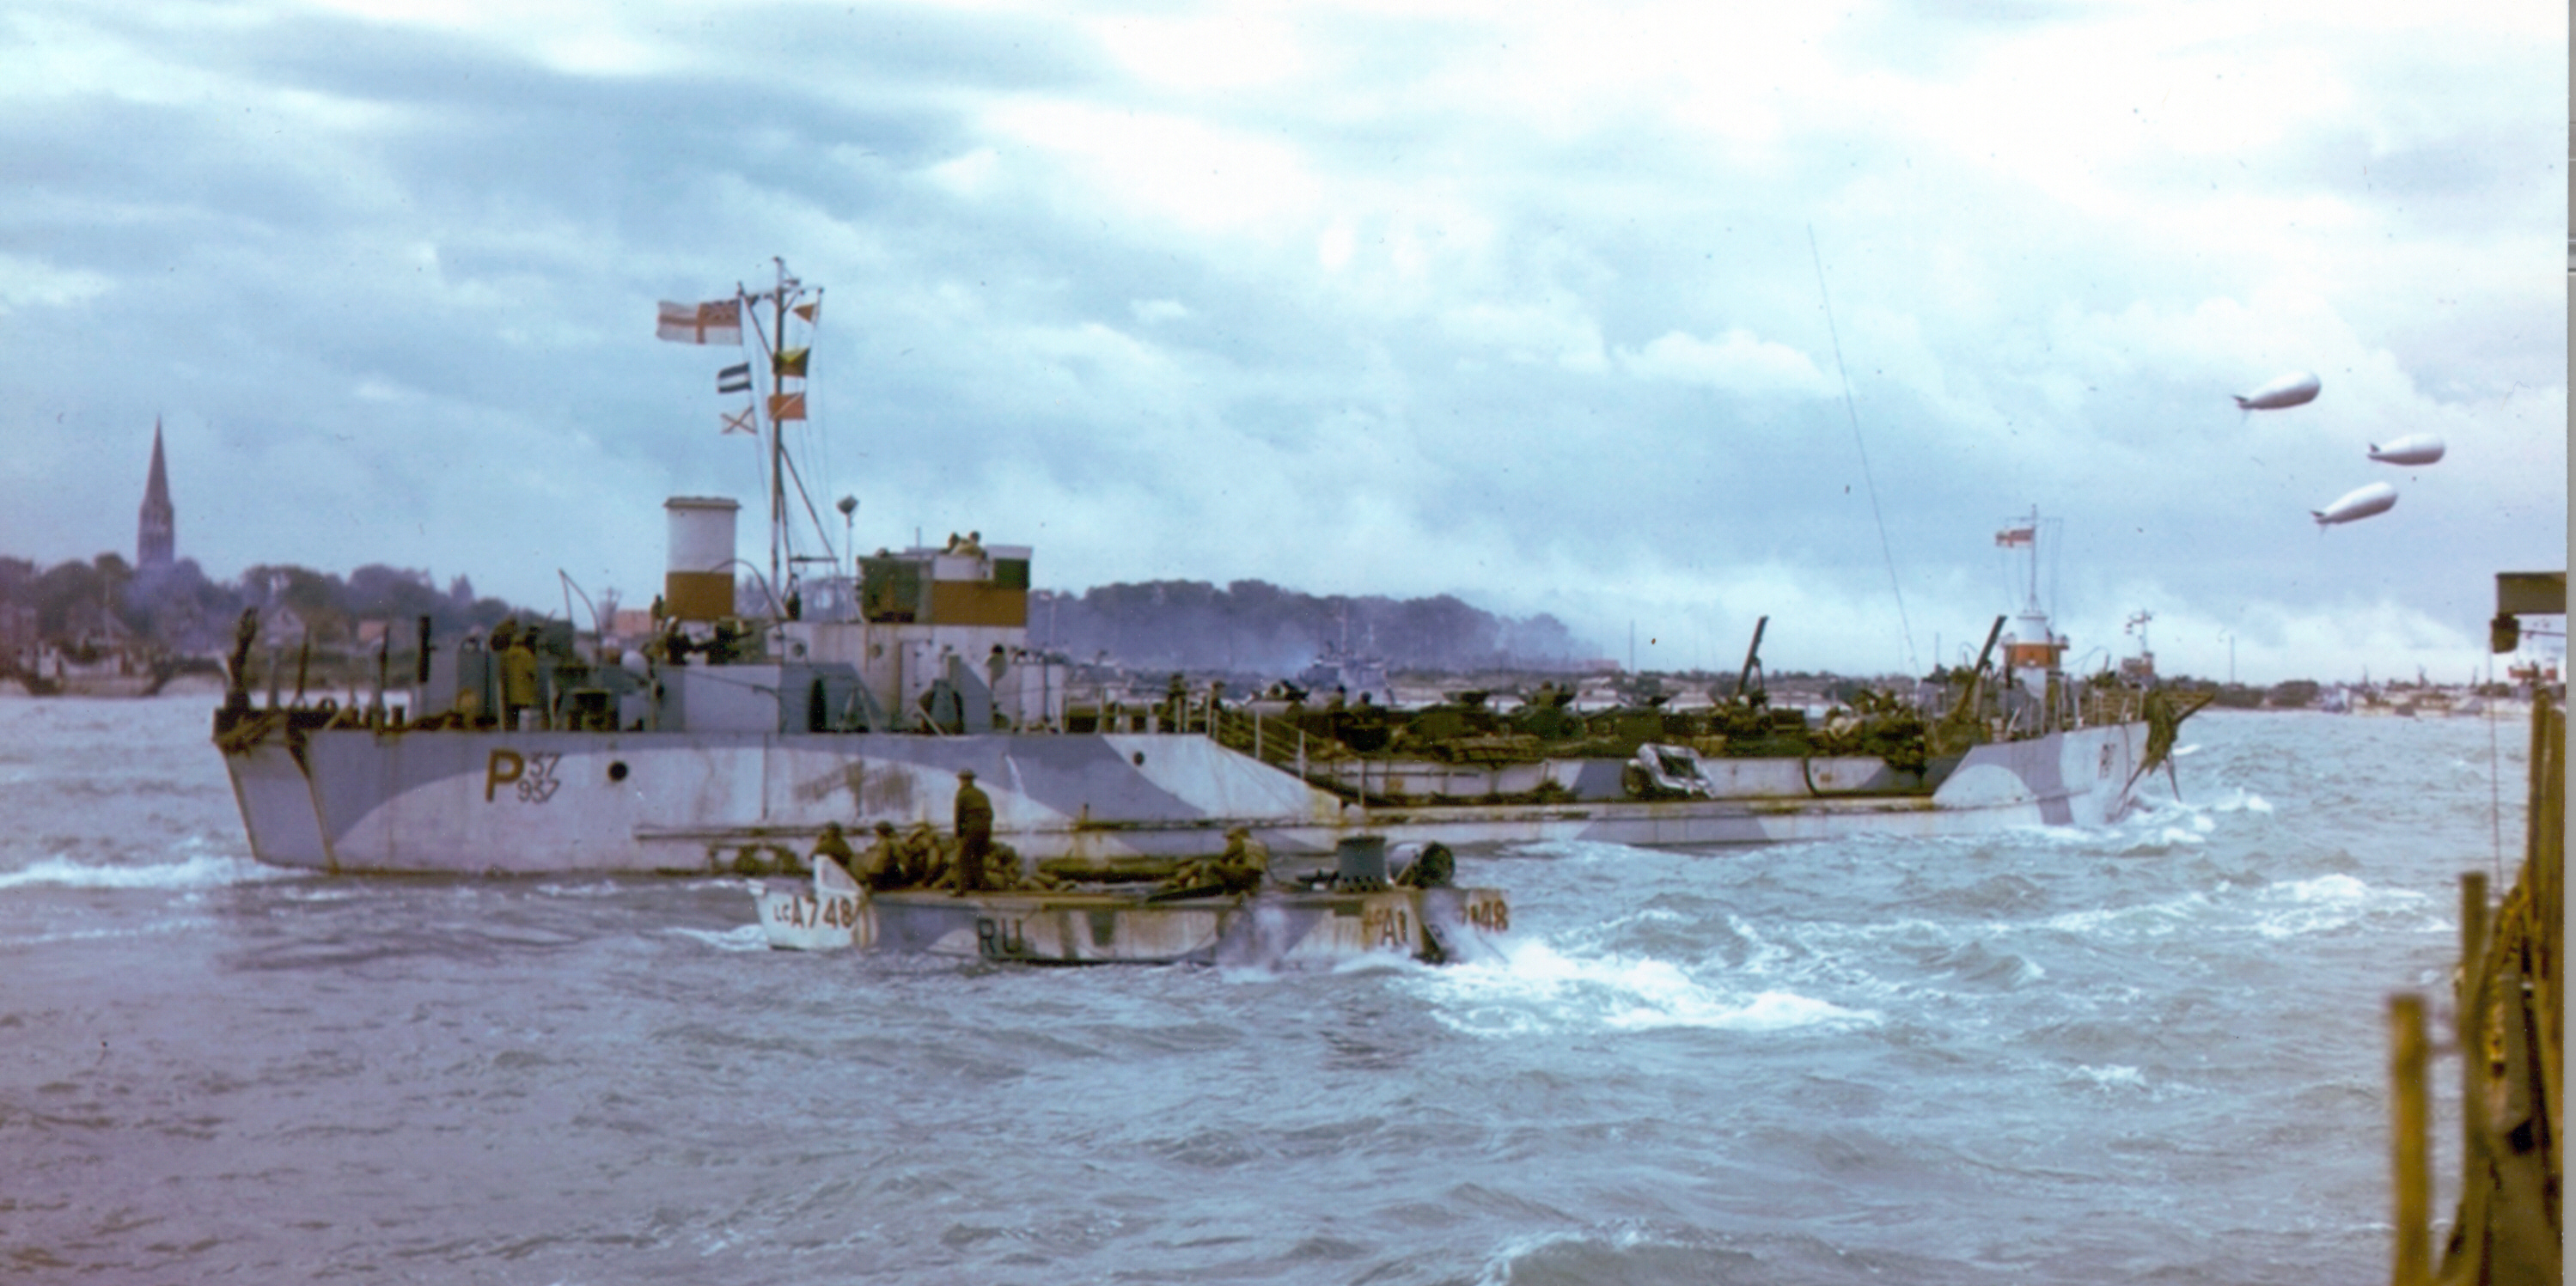 Colour photograph. A Landing Craft Tank (LCT), loaded with Sherman tanks belonging to 2nd Canadian Armoured Brigade, sails along the coast off Bernières-sur-Mer. The Church steeple in the centre of the town is visible at the left edge of the photo. A much smaller Landing Craft Assault (LCA) putters past in front of the LCT. Source: Library and Archives Canada CT 305 / Courtesy of the Juno Beach Centre Association